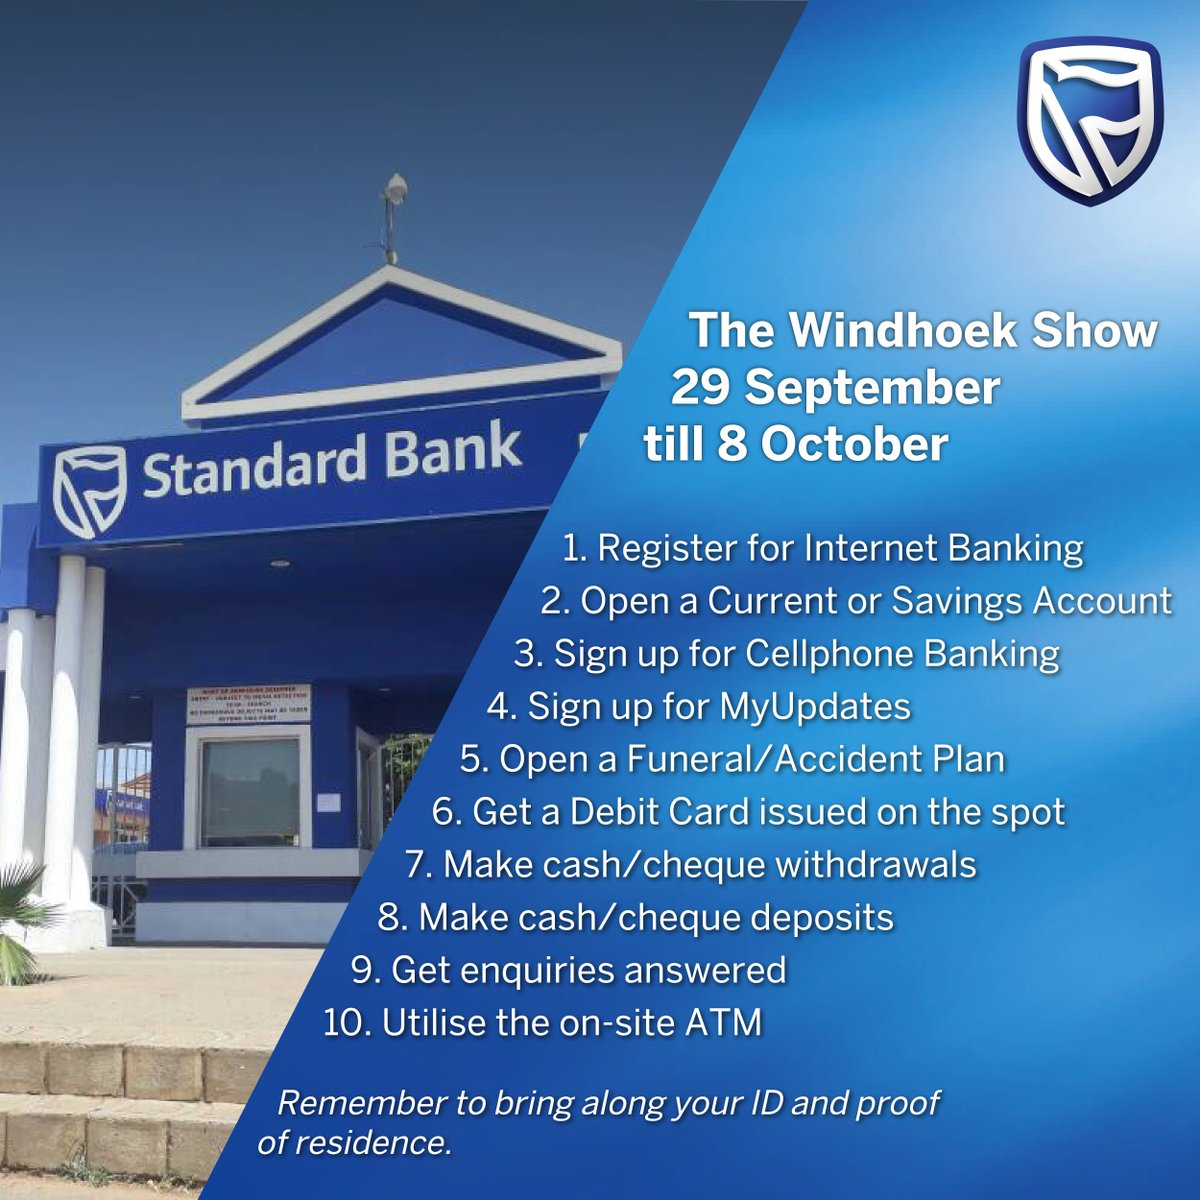 Standard Bank Namibia On Twitter We Re At The Windhoek Show From Friday Come Along And Visit Our Stand